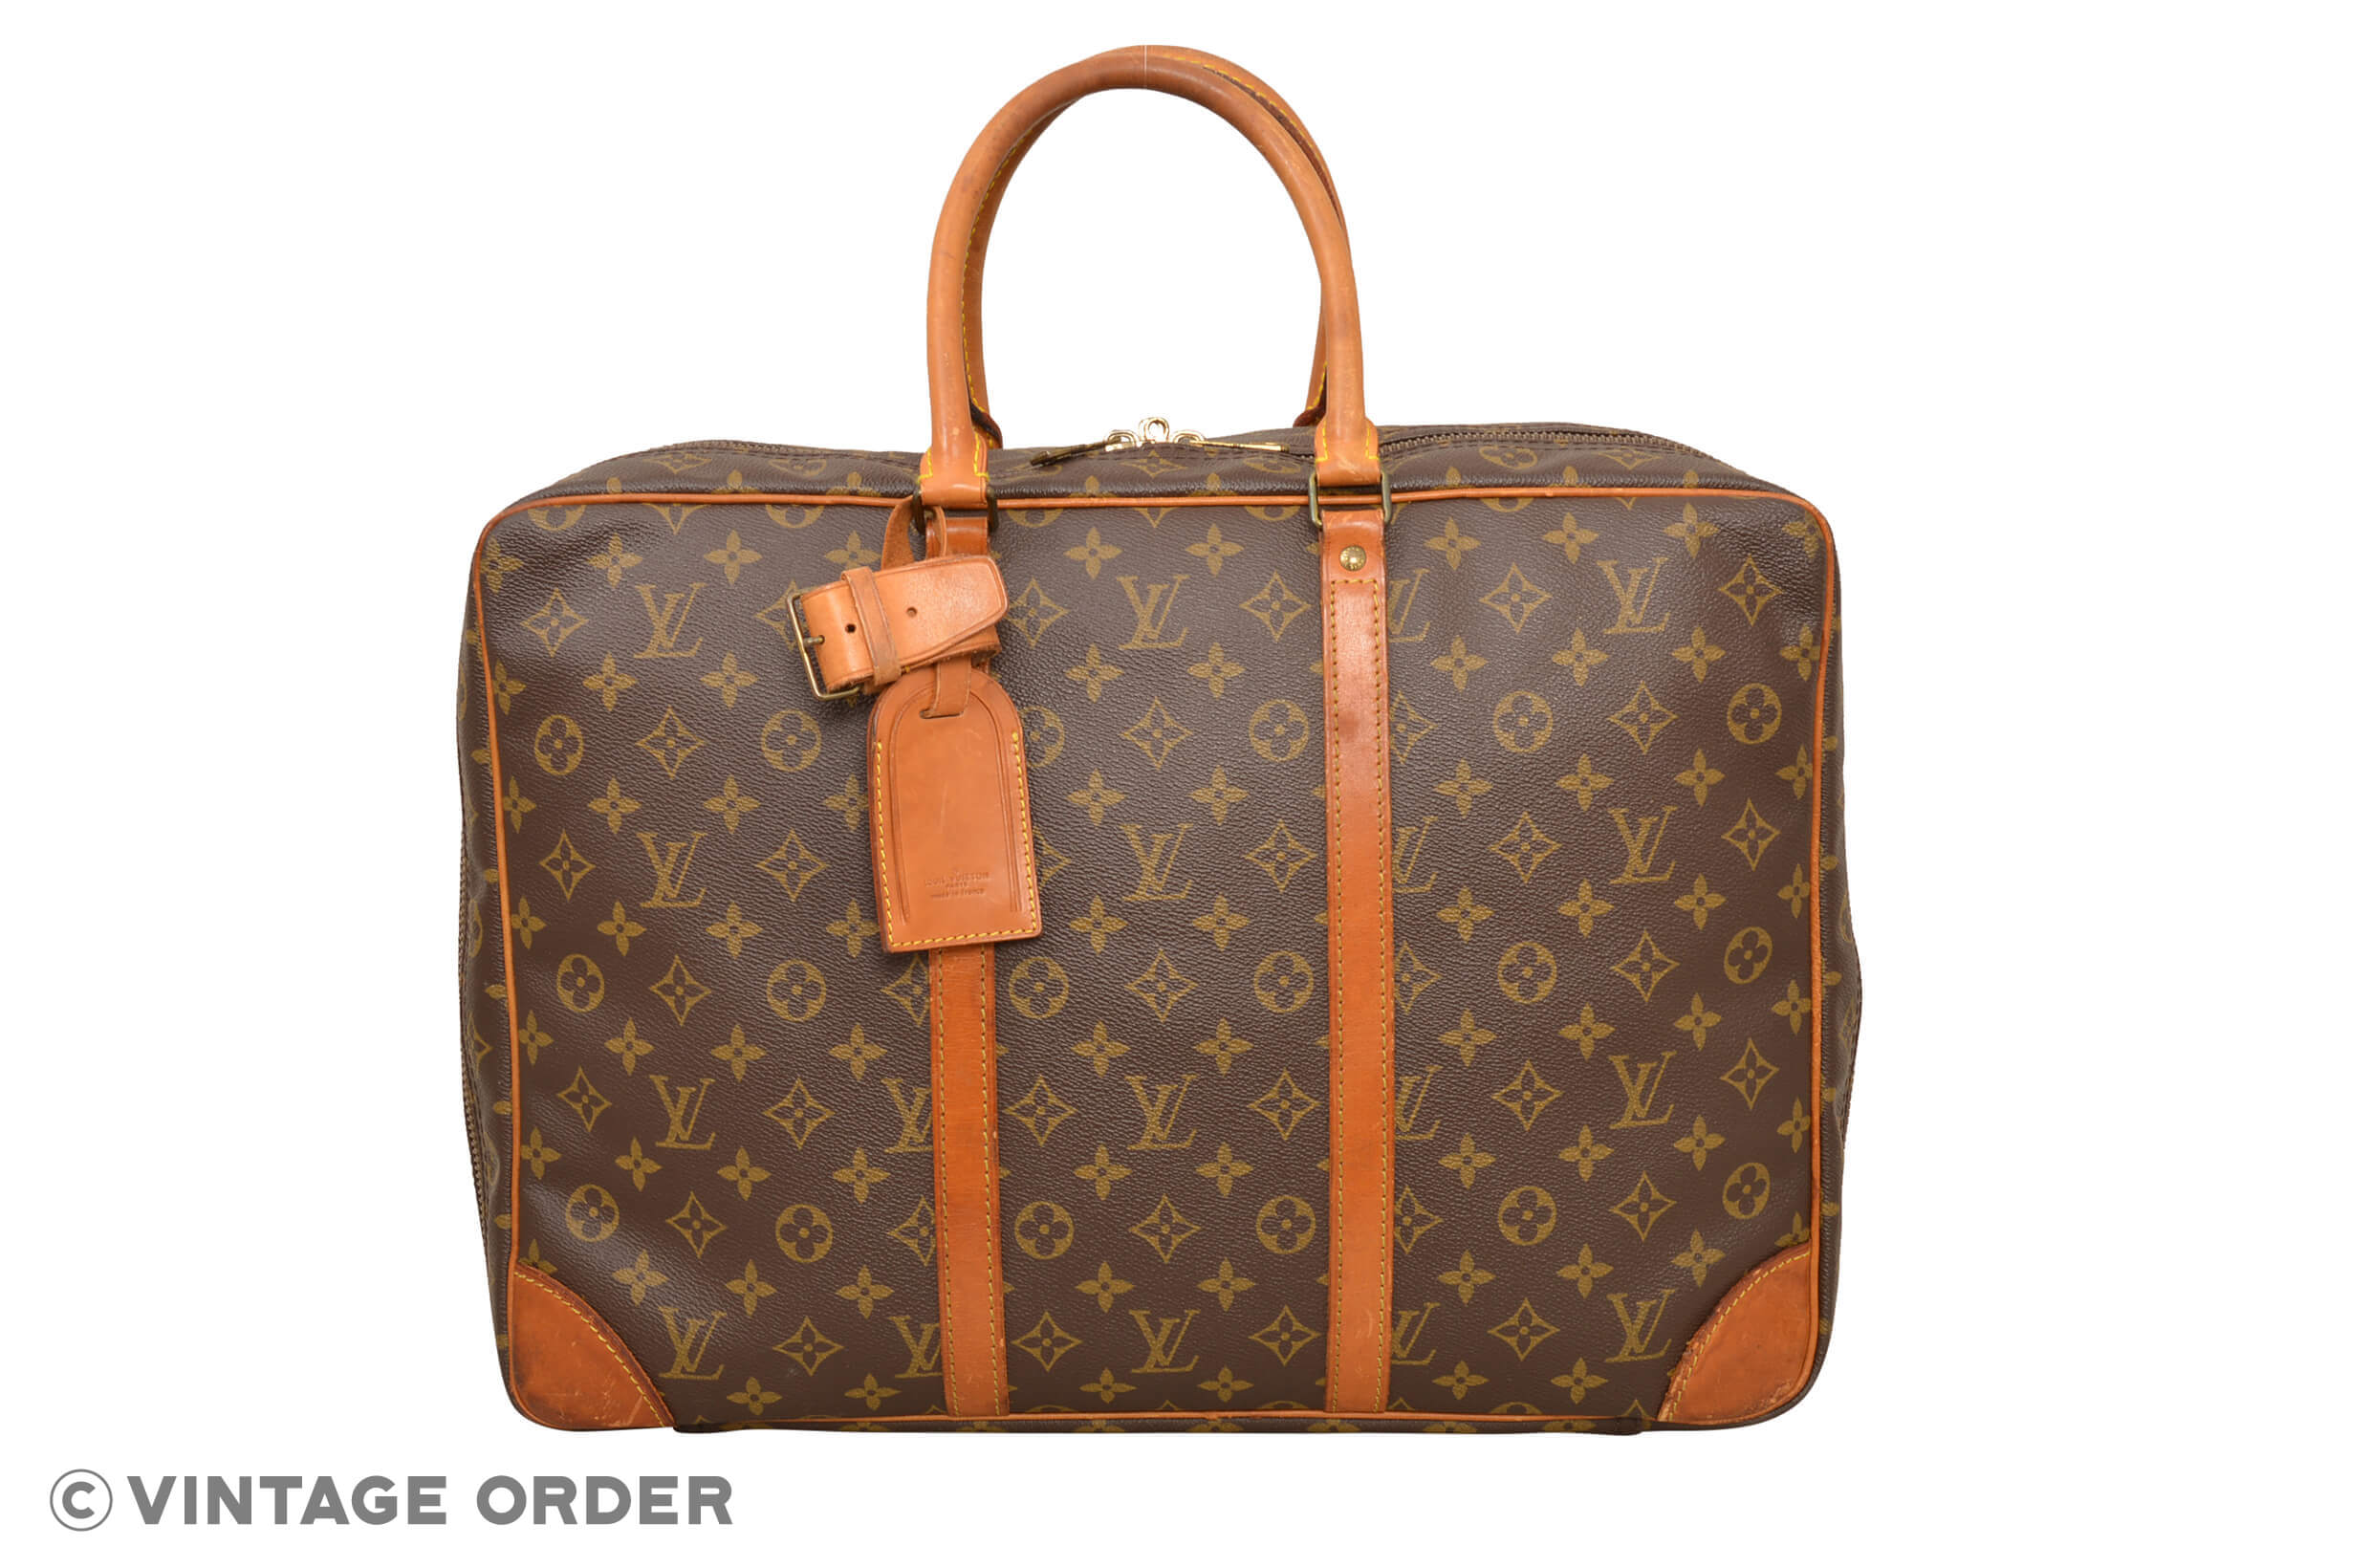 Details about Louis Vuitton Monogram Sirius 45 Travel Bag Suitcase M41408 -  E01529 a5db18a3d7